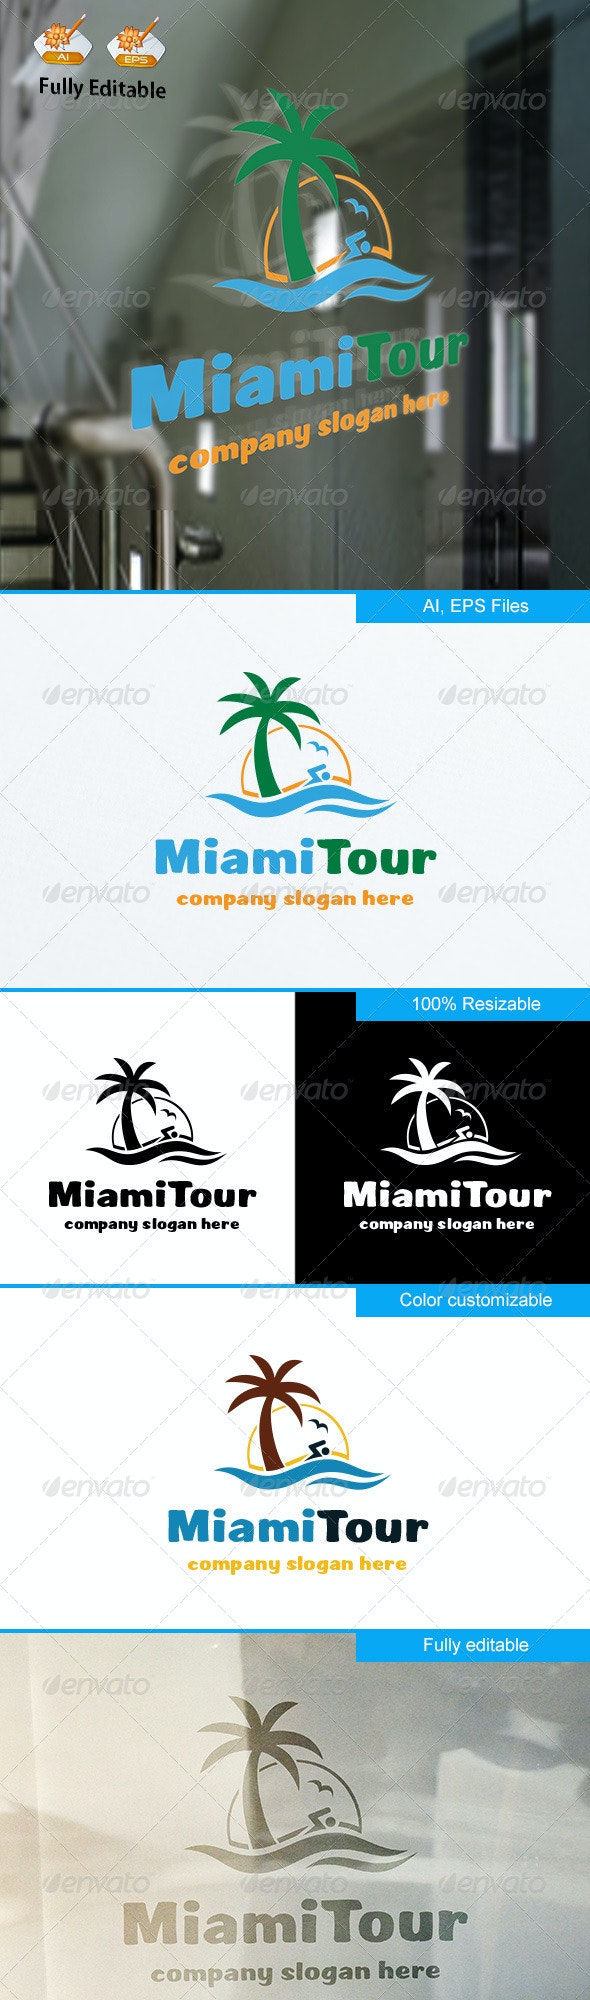 MiamiTour logo - Nature Logo Templates